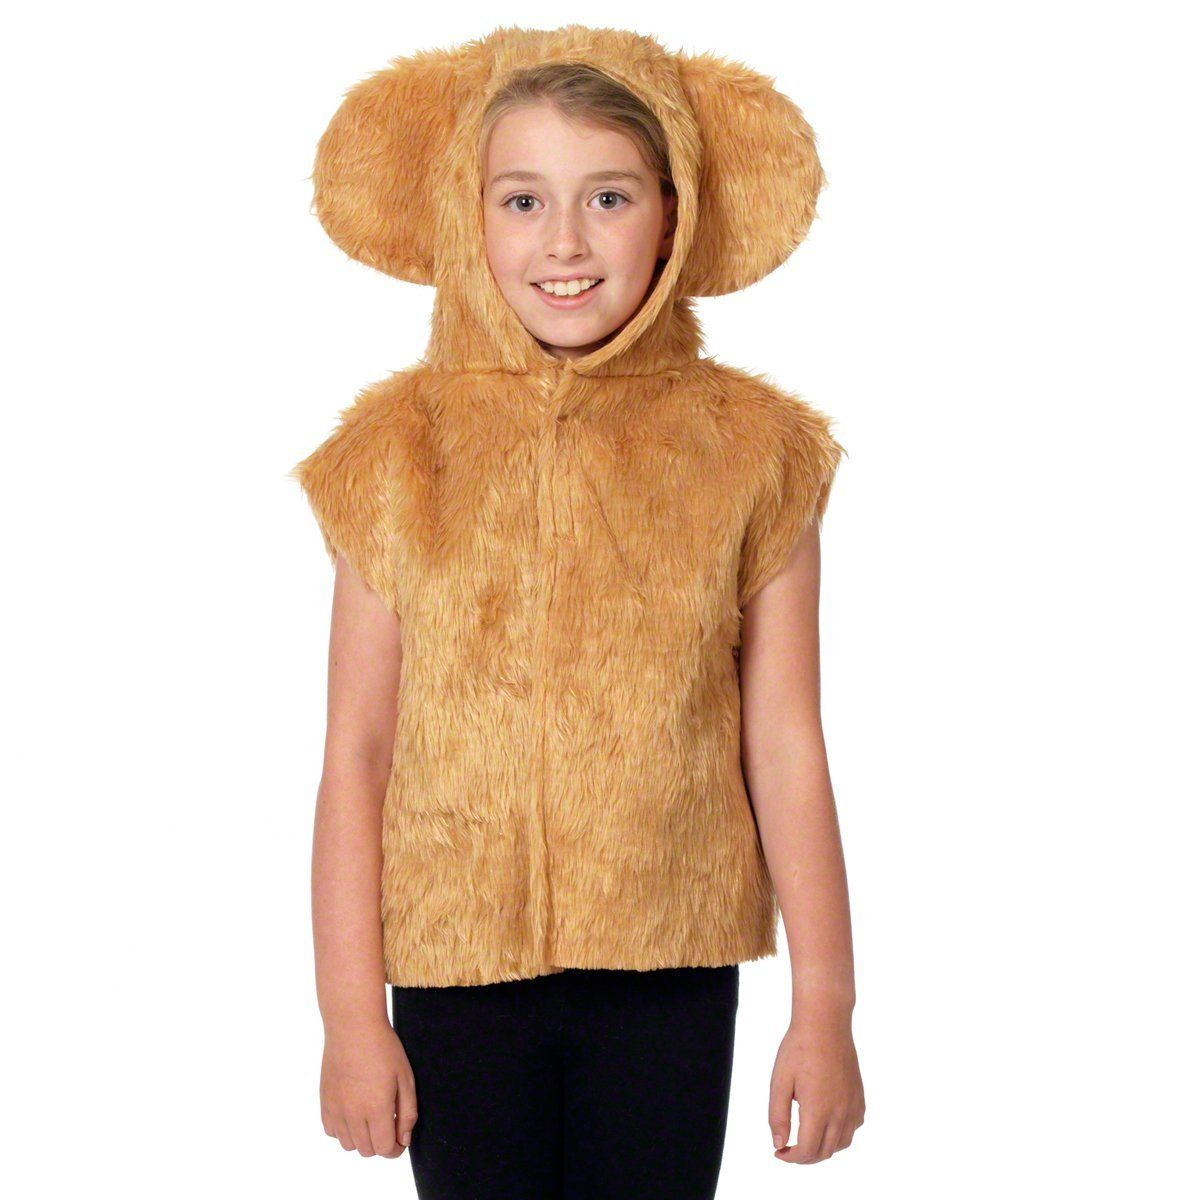 Bear Costume for kids. One Size 39 Years